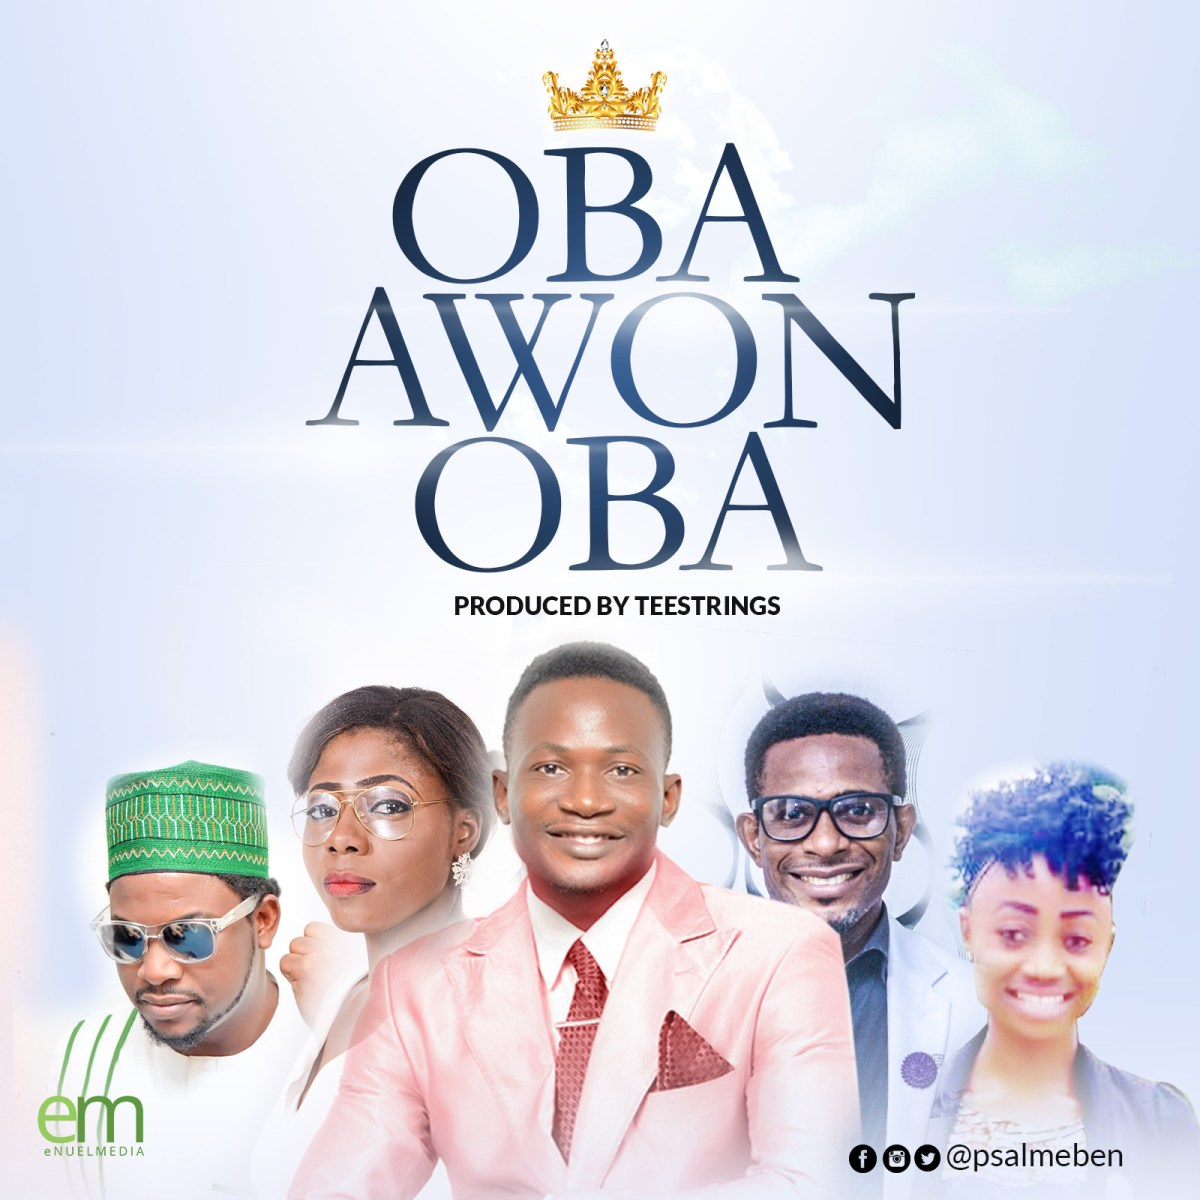 #Music : Oba Awon Oba - Psalmeben Feat. Mary, Olawale, Favour And Mike Olas | @Psalmeben @Mikeolaz @Olawalepsalmist